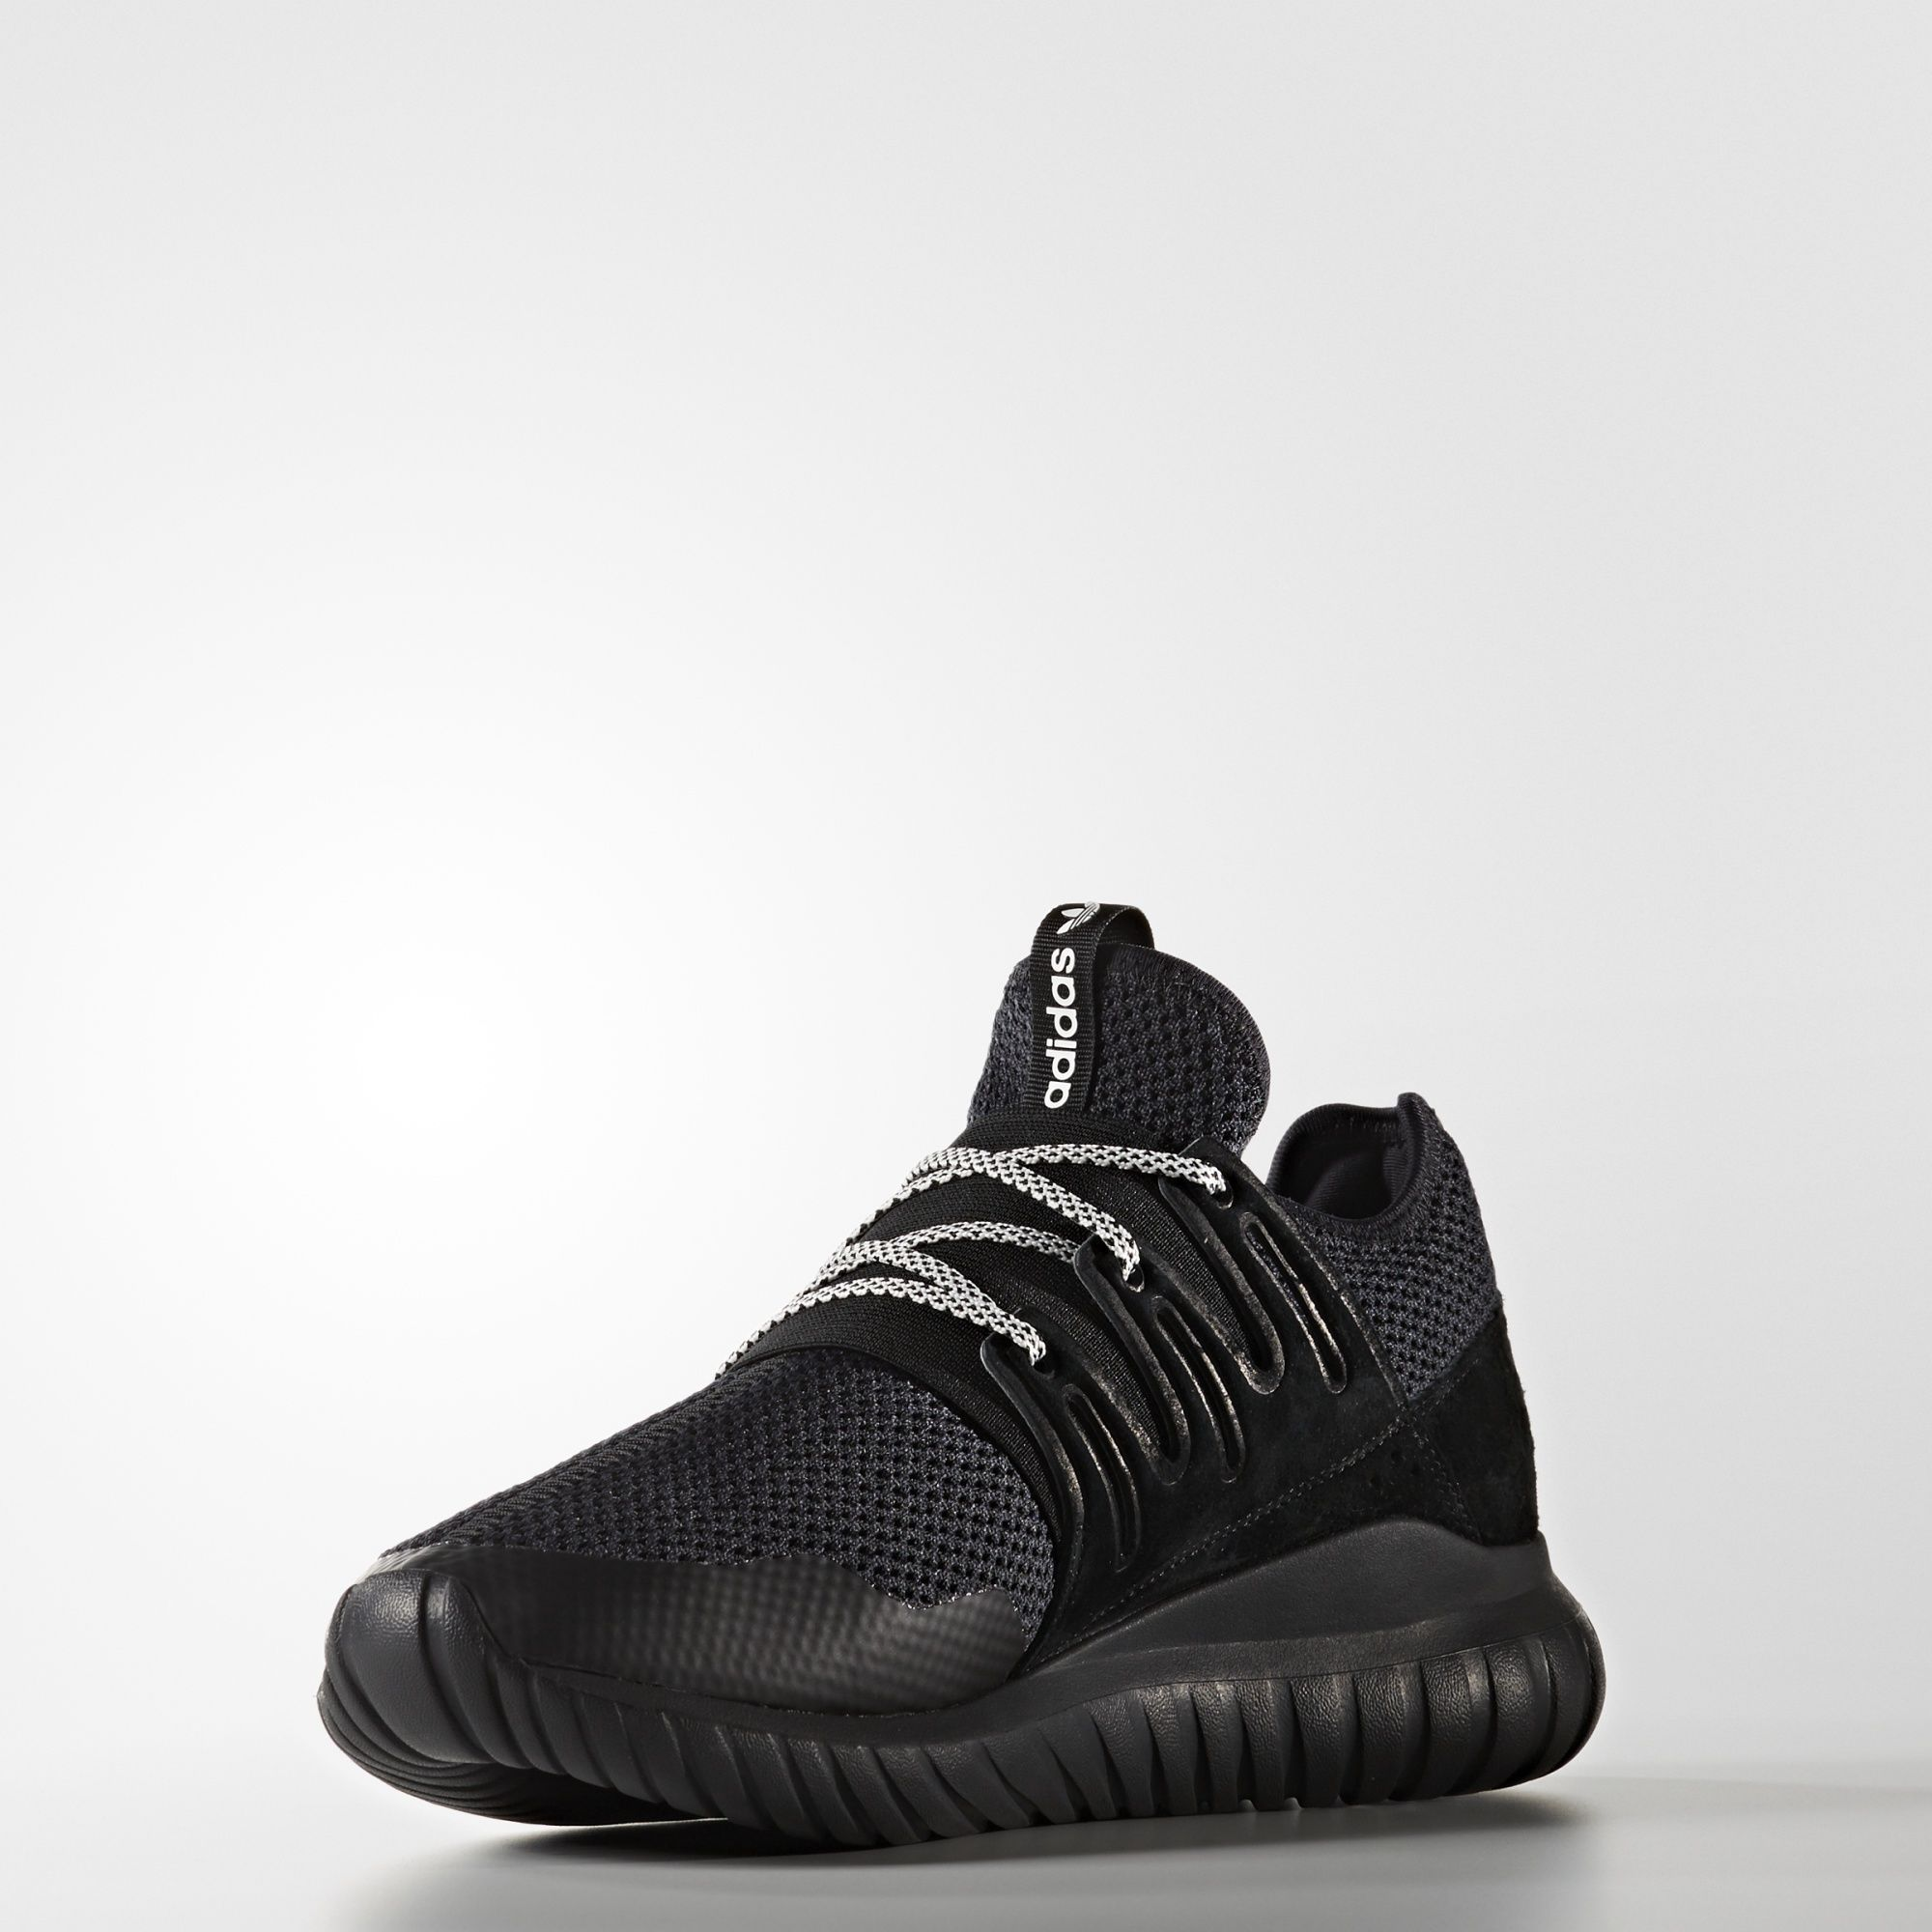 adidas - Tubular Radial Shoes